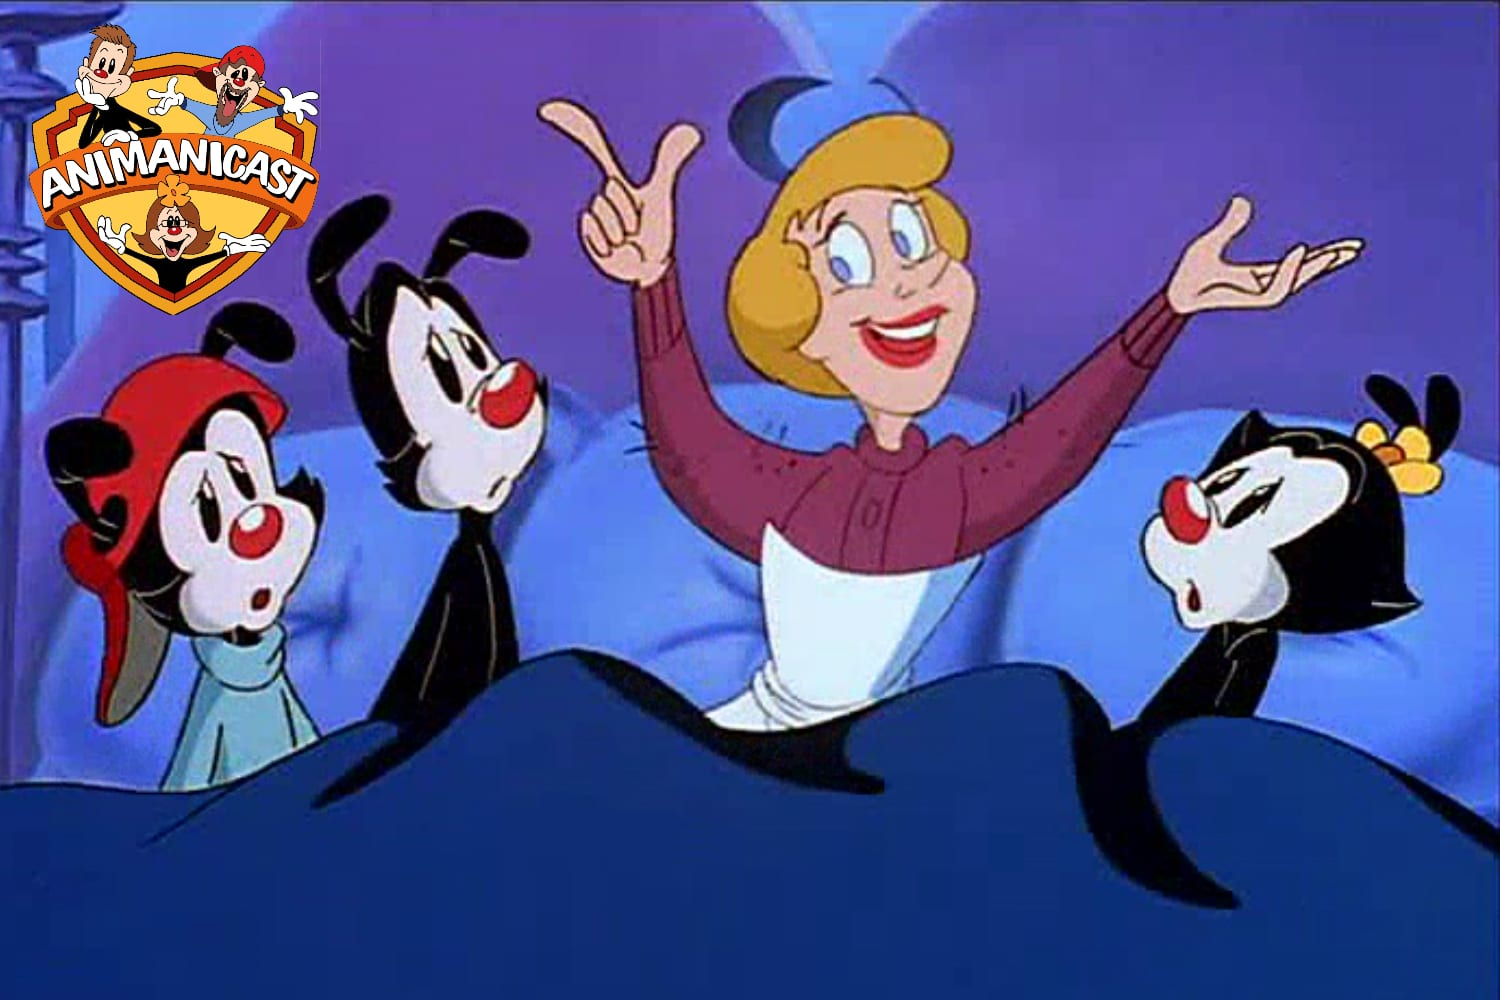 "Animanicast #78: Discussing Animaniacs ""The Sound of Warners"" and more!"